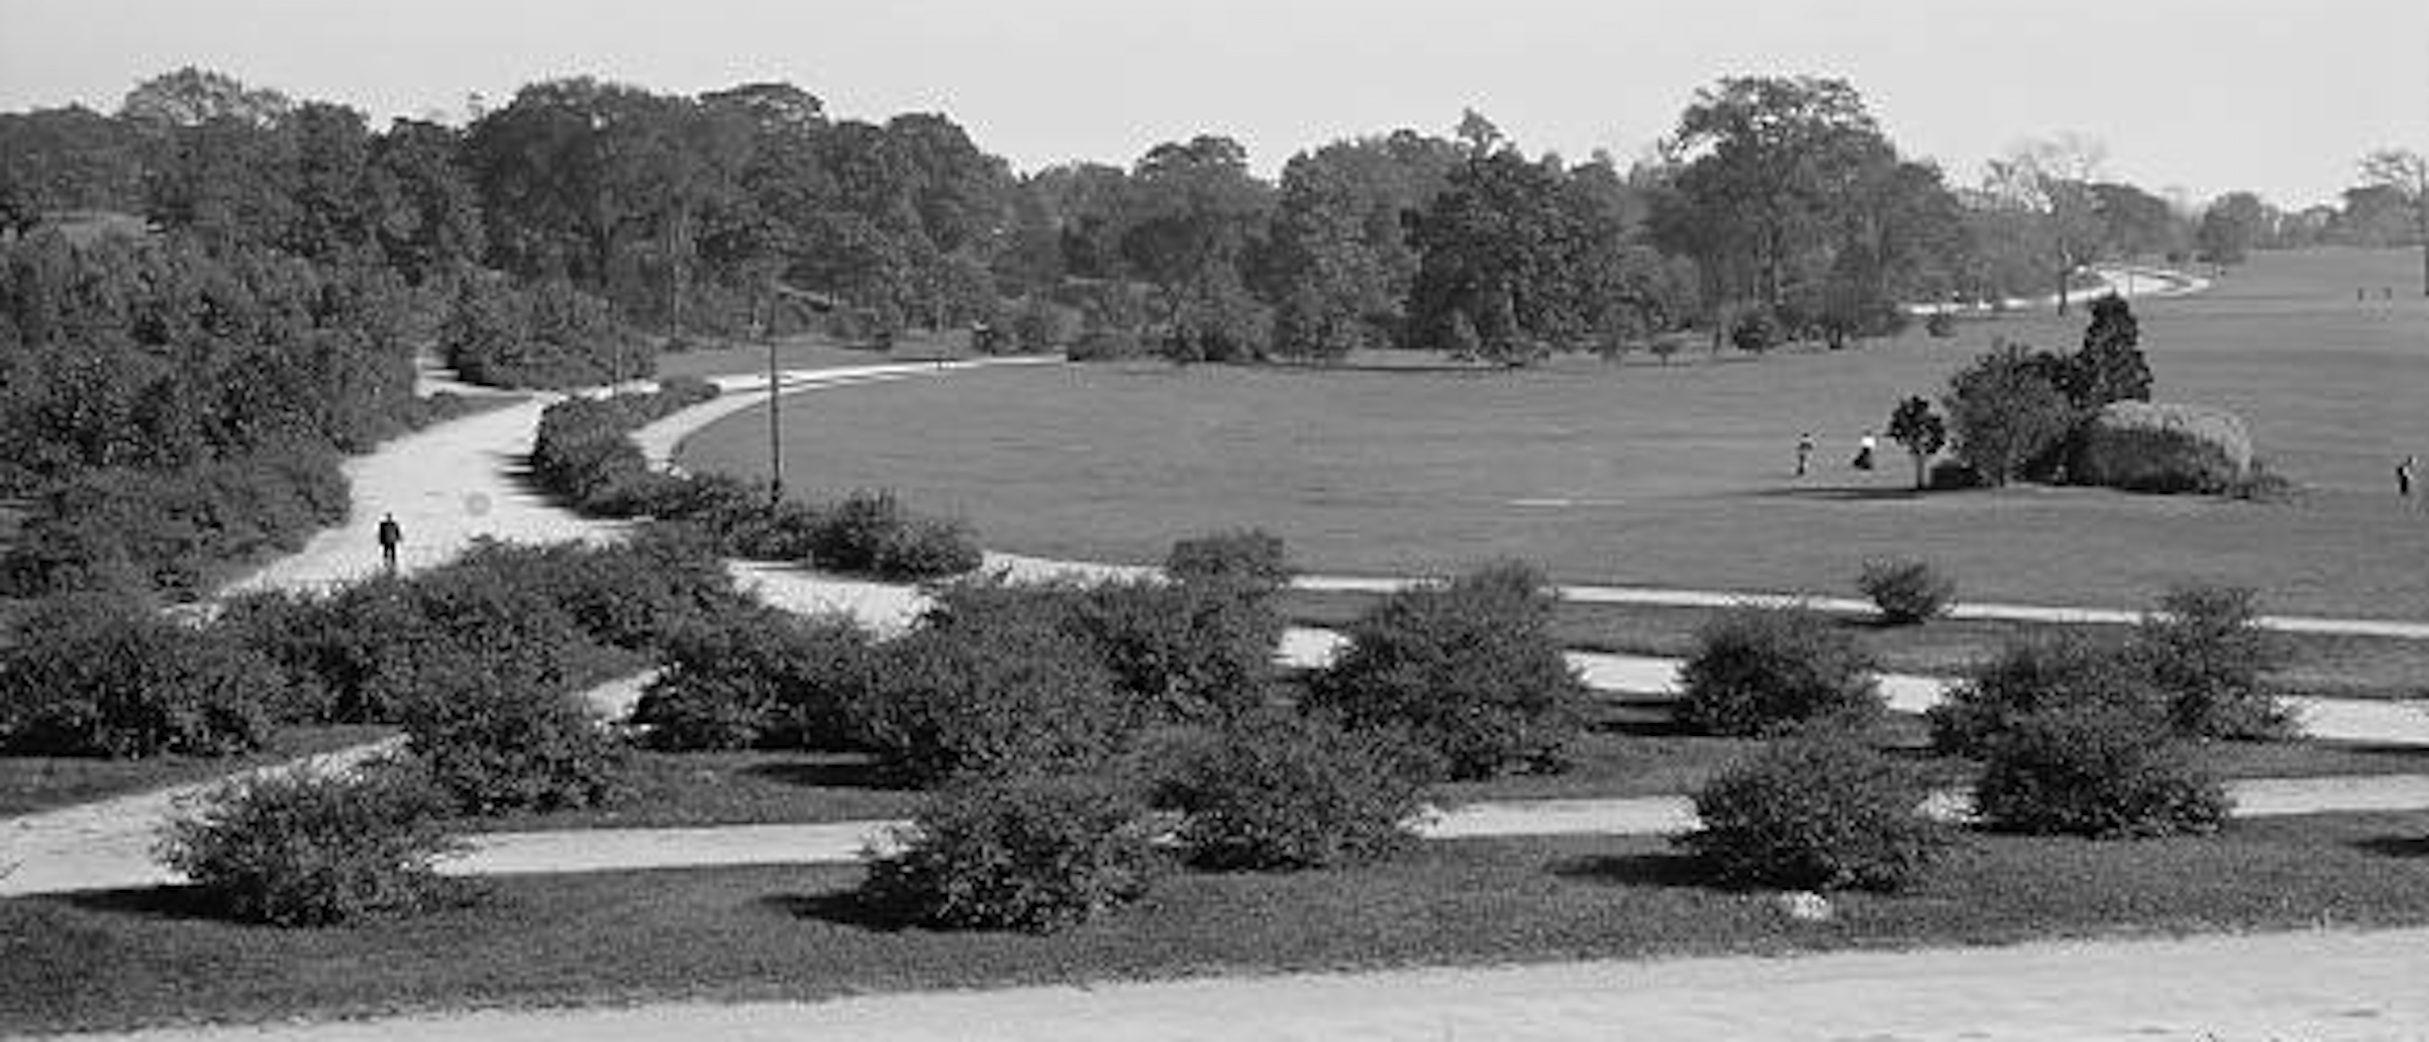 Golf was played in many of Frederick Law Olmsted's parks like Franklin Park in Boston